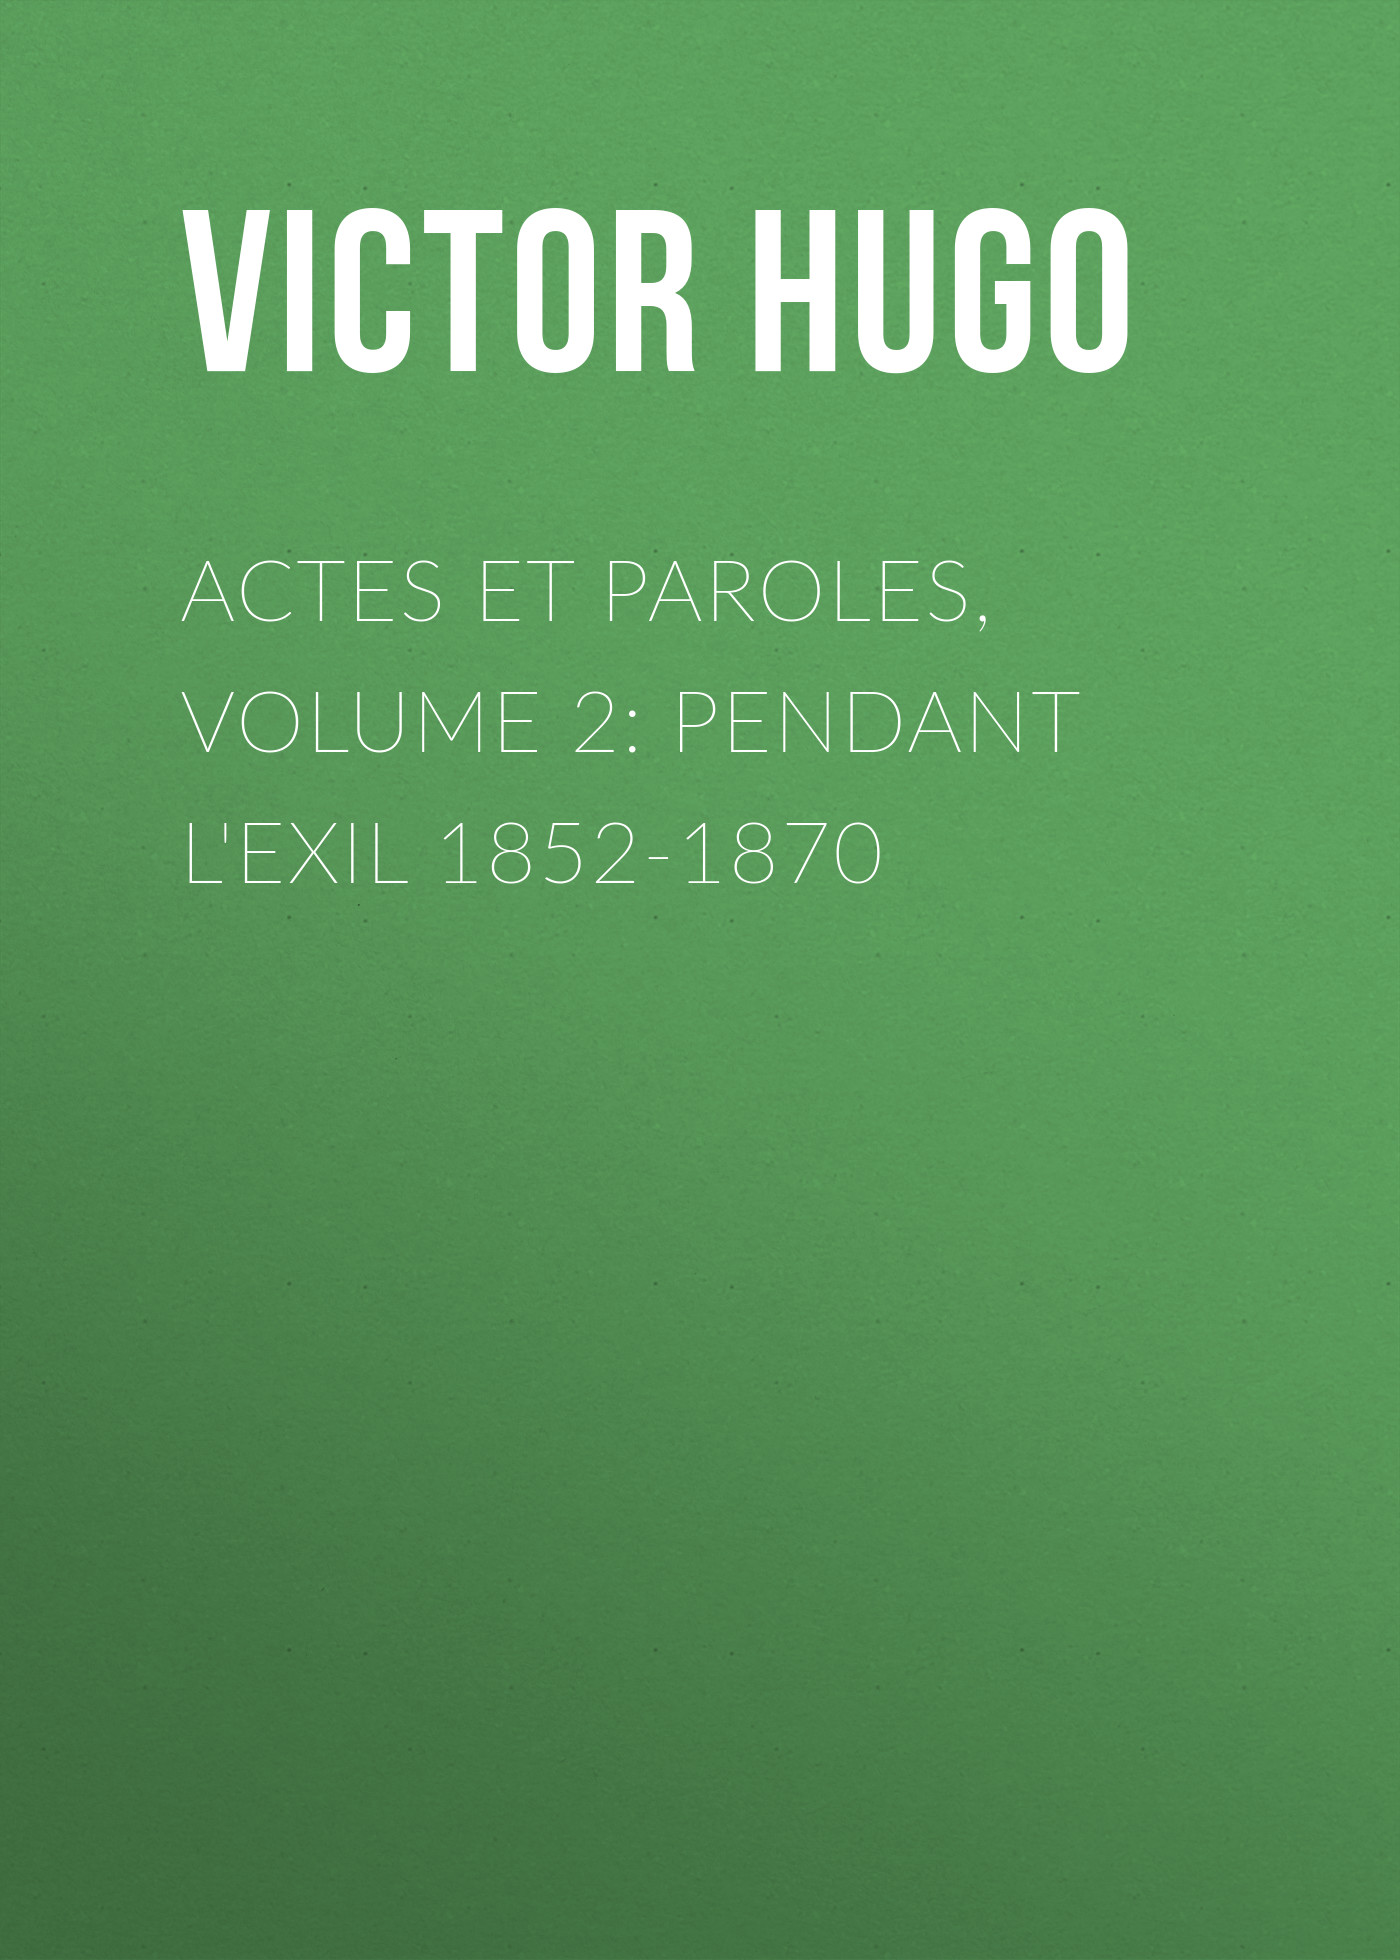 actes et paroles volume 2 pendant lexil 1852 1870